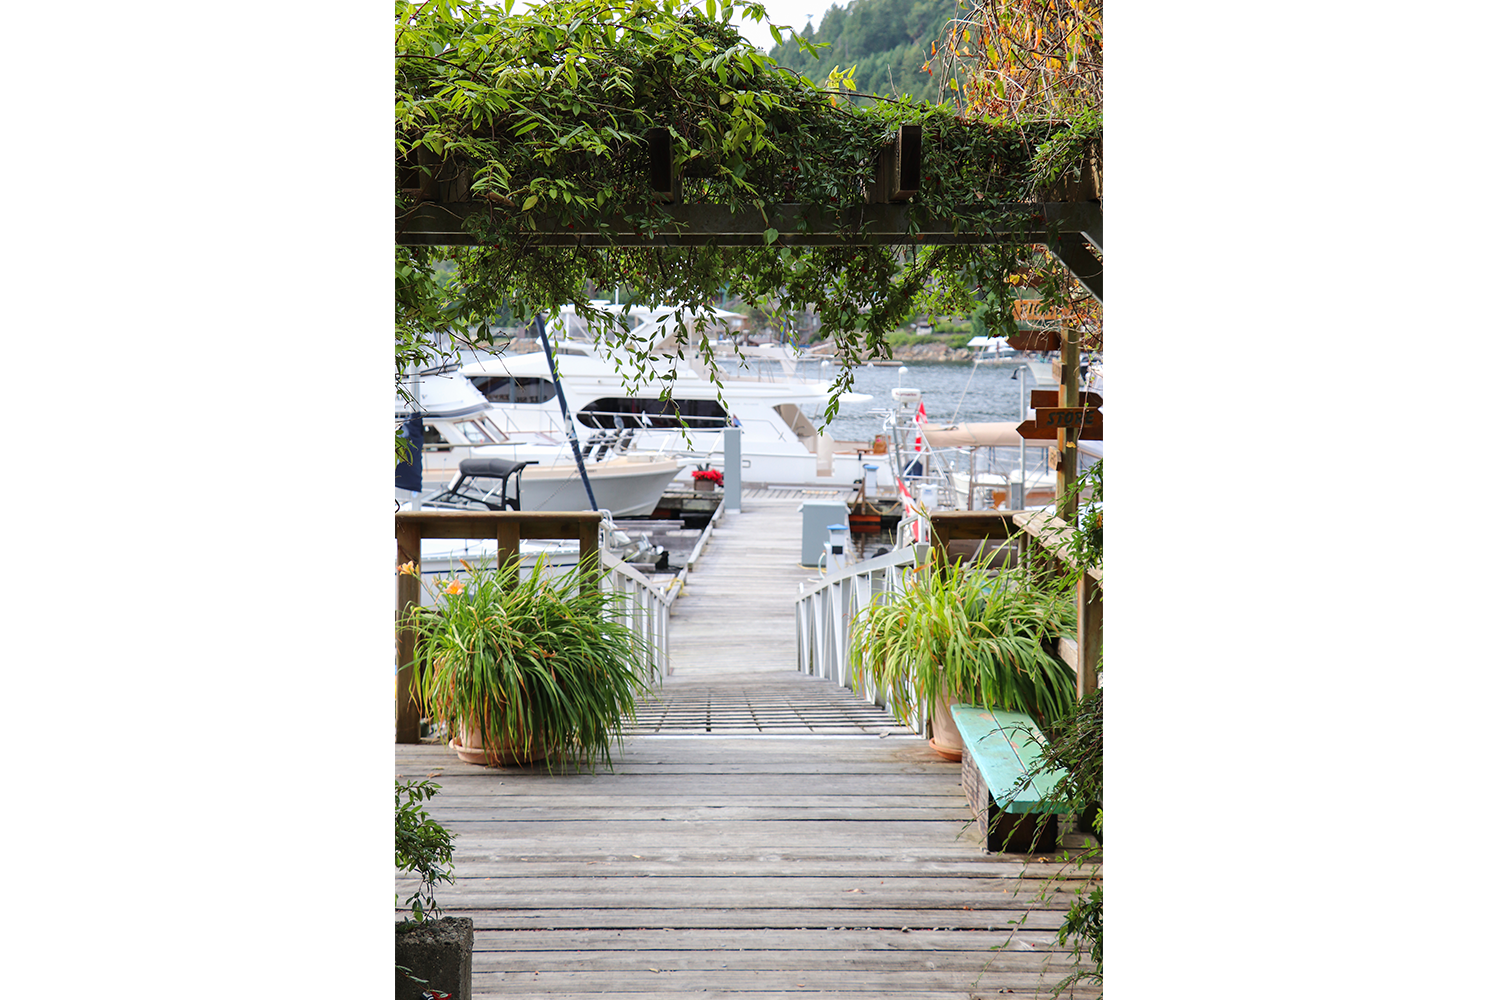 Gardens on the Marina Dock at John Henry's Marina & Resort Moorage with two boats and Pender Harbour in the background.